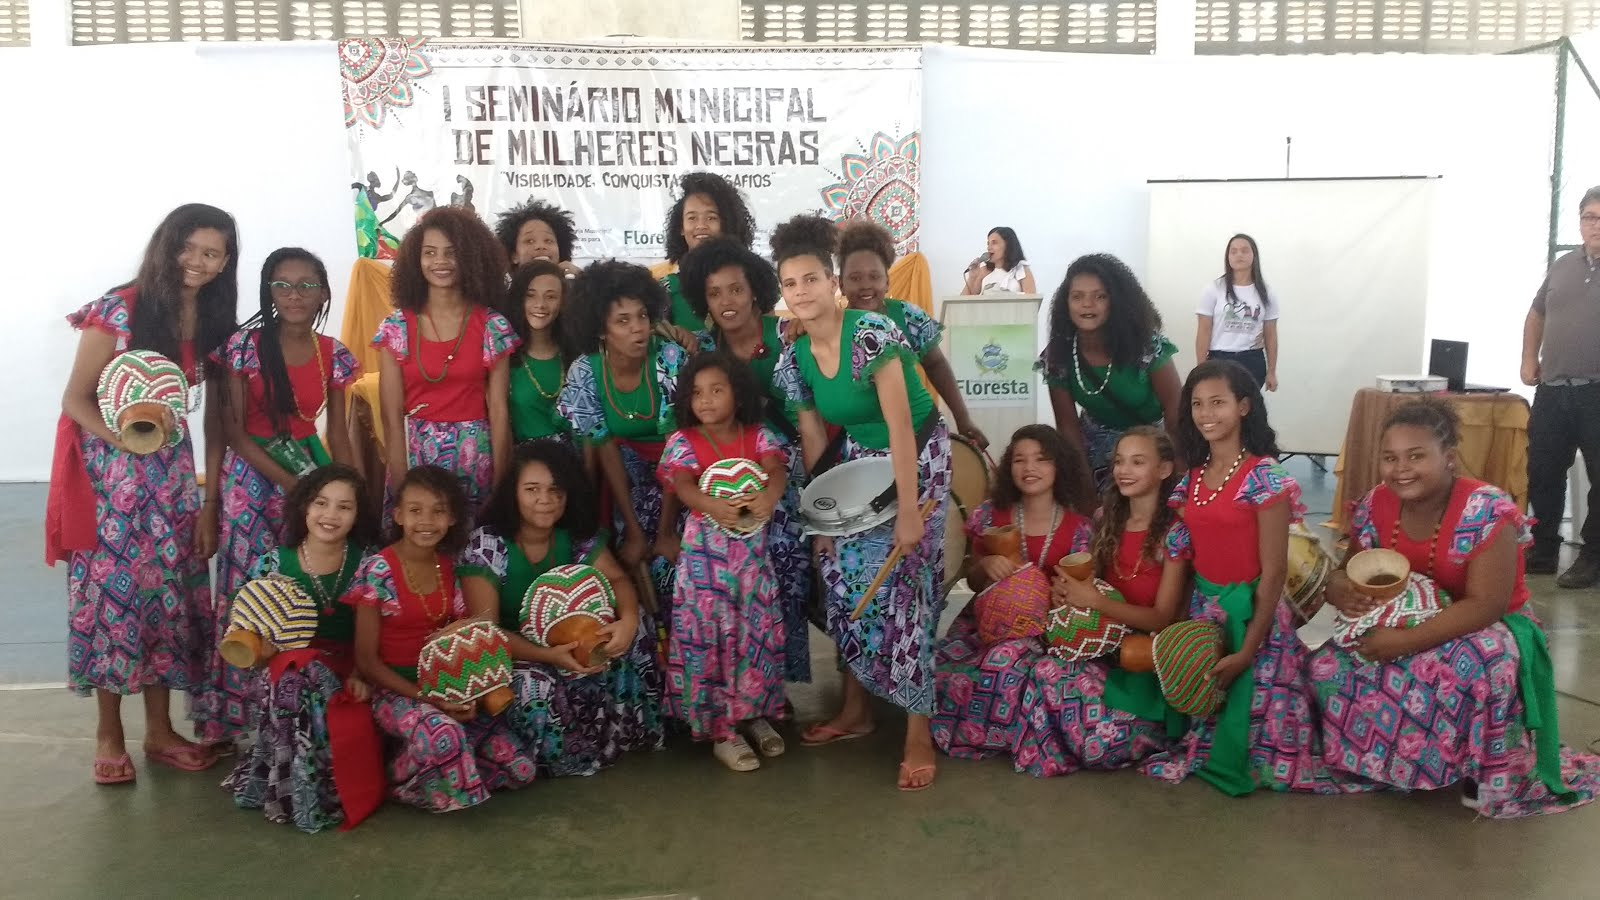 GRUPO CULTURAL AFRO MULHER